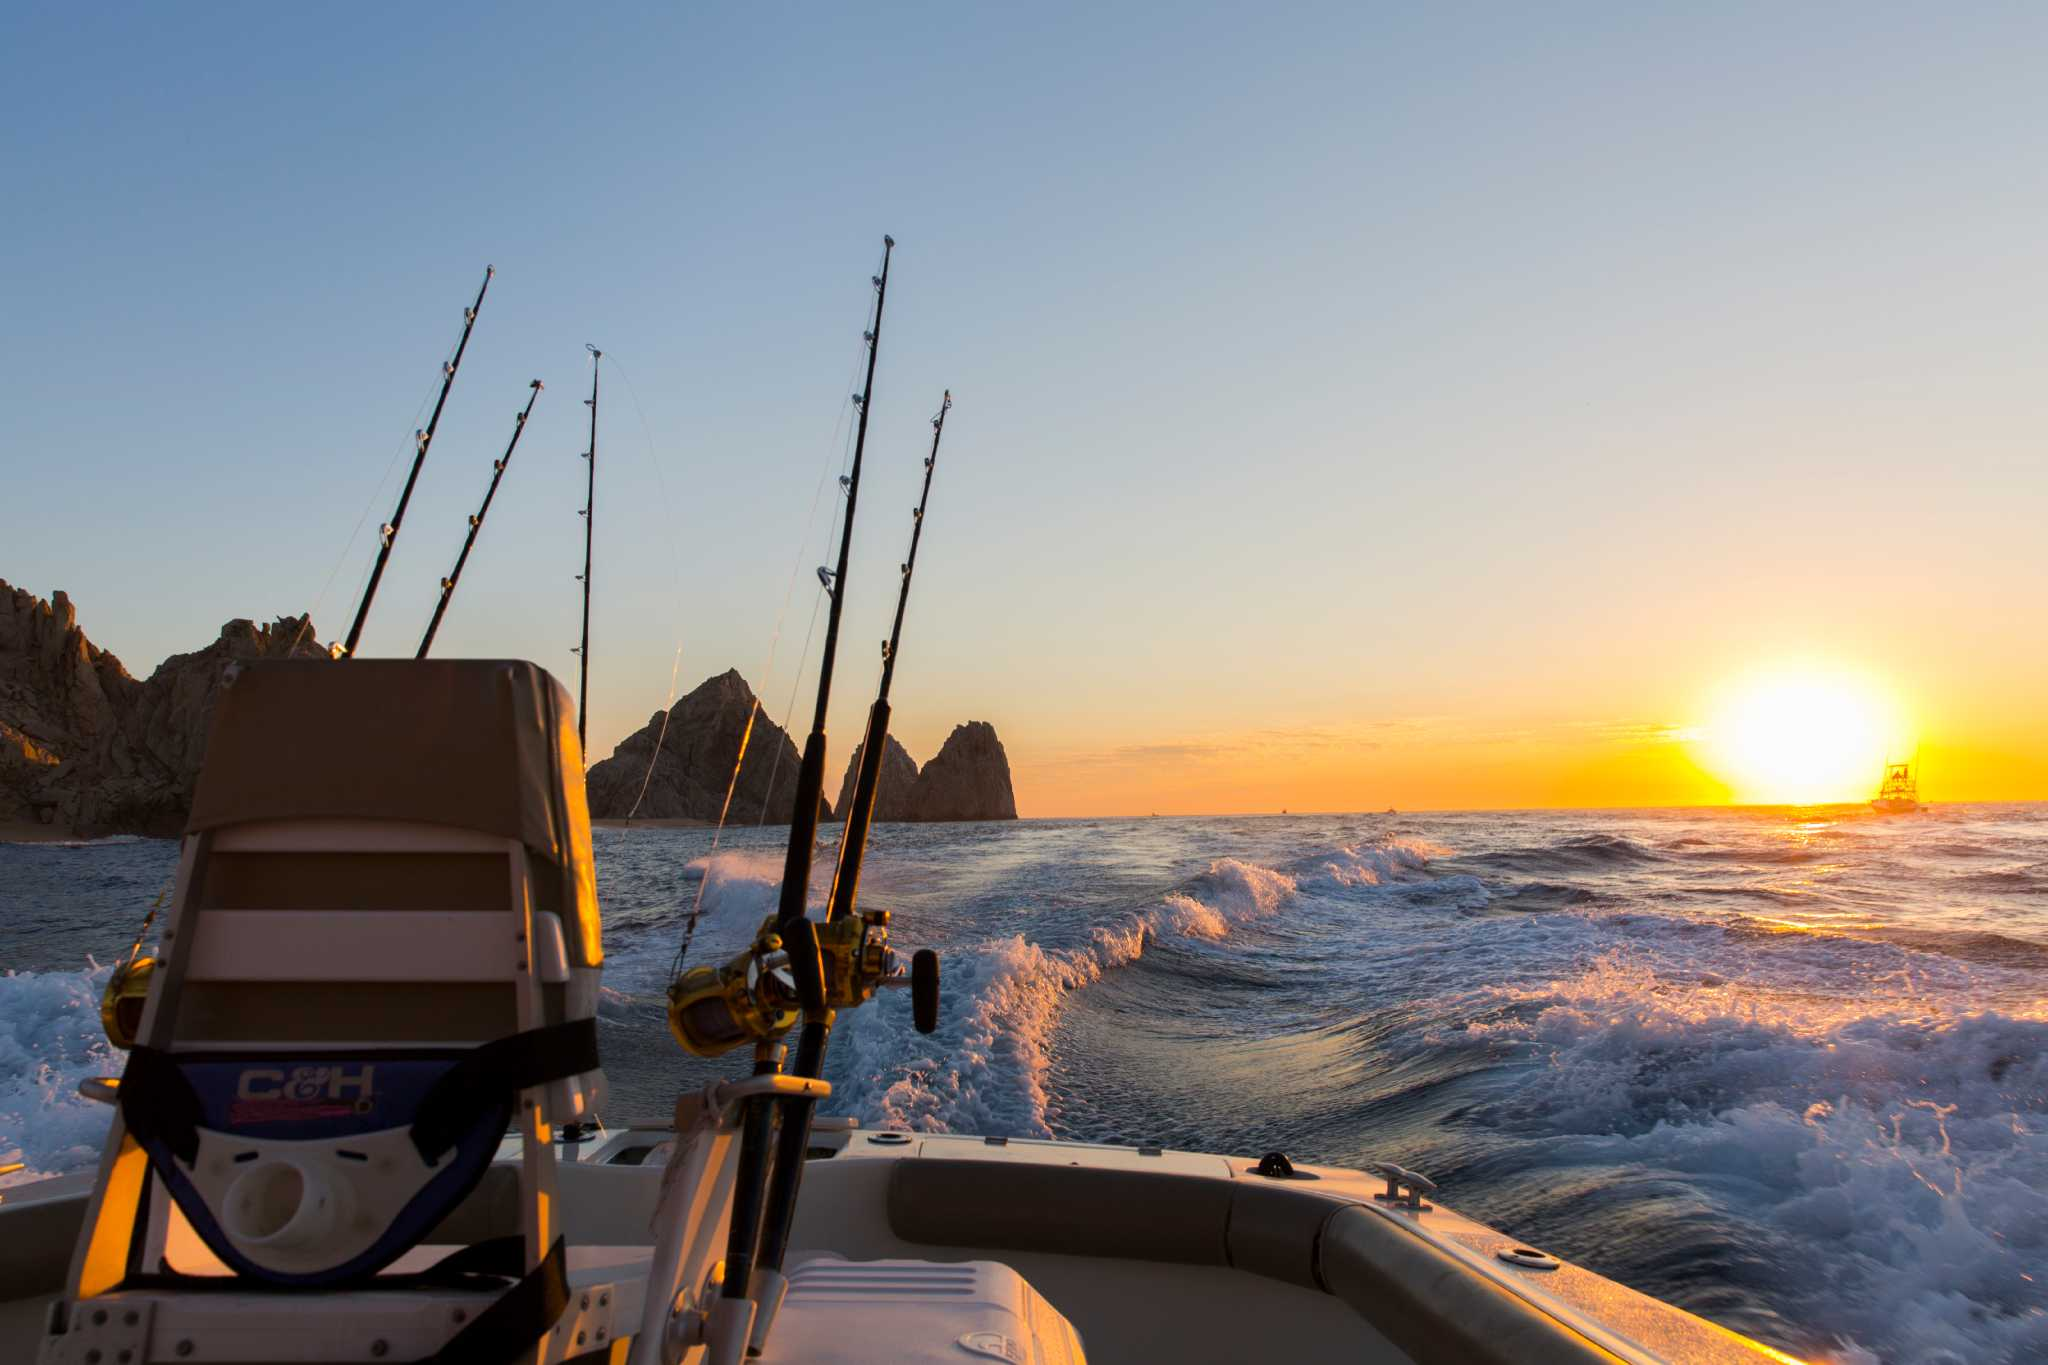 In cabo san lucas fishing for marlin reels in the soul of for Marlin fishing cabo